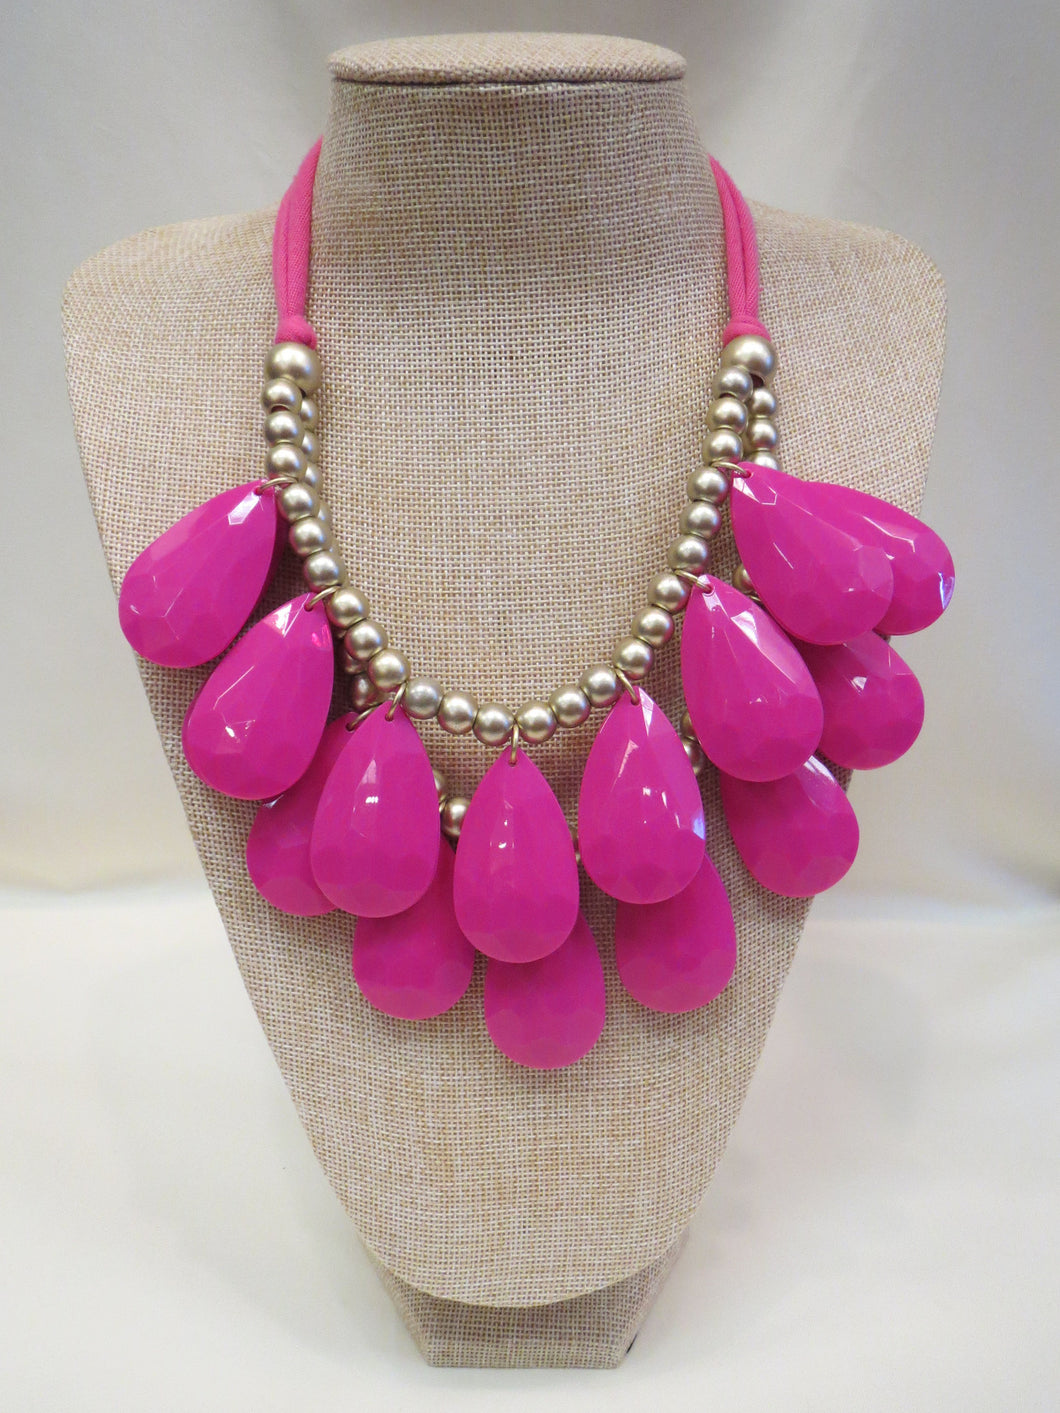 ADO | Cloth Necklace Pink & Gold Beads - All Decd Out